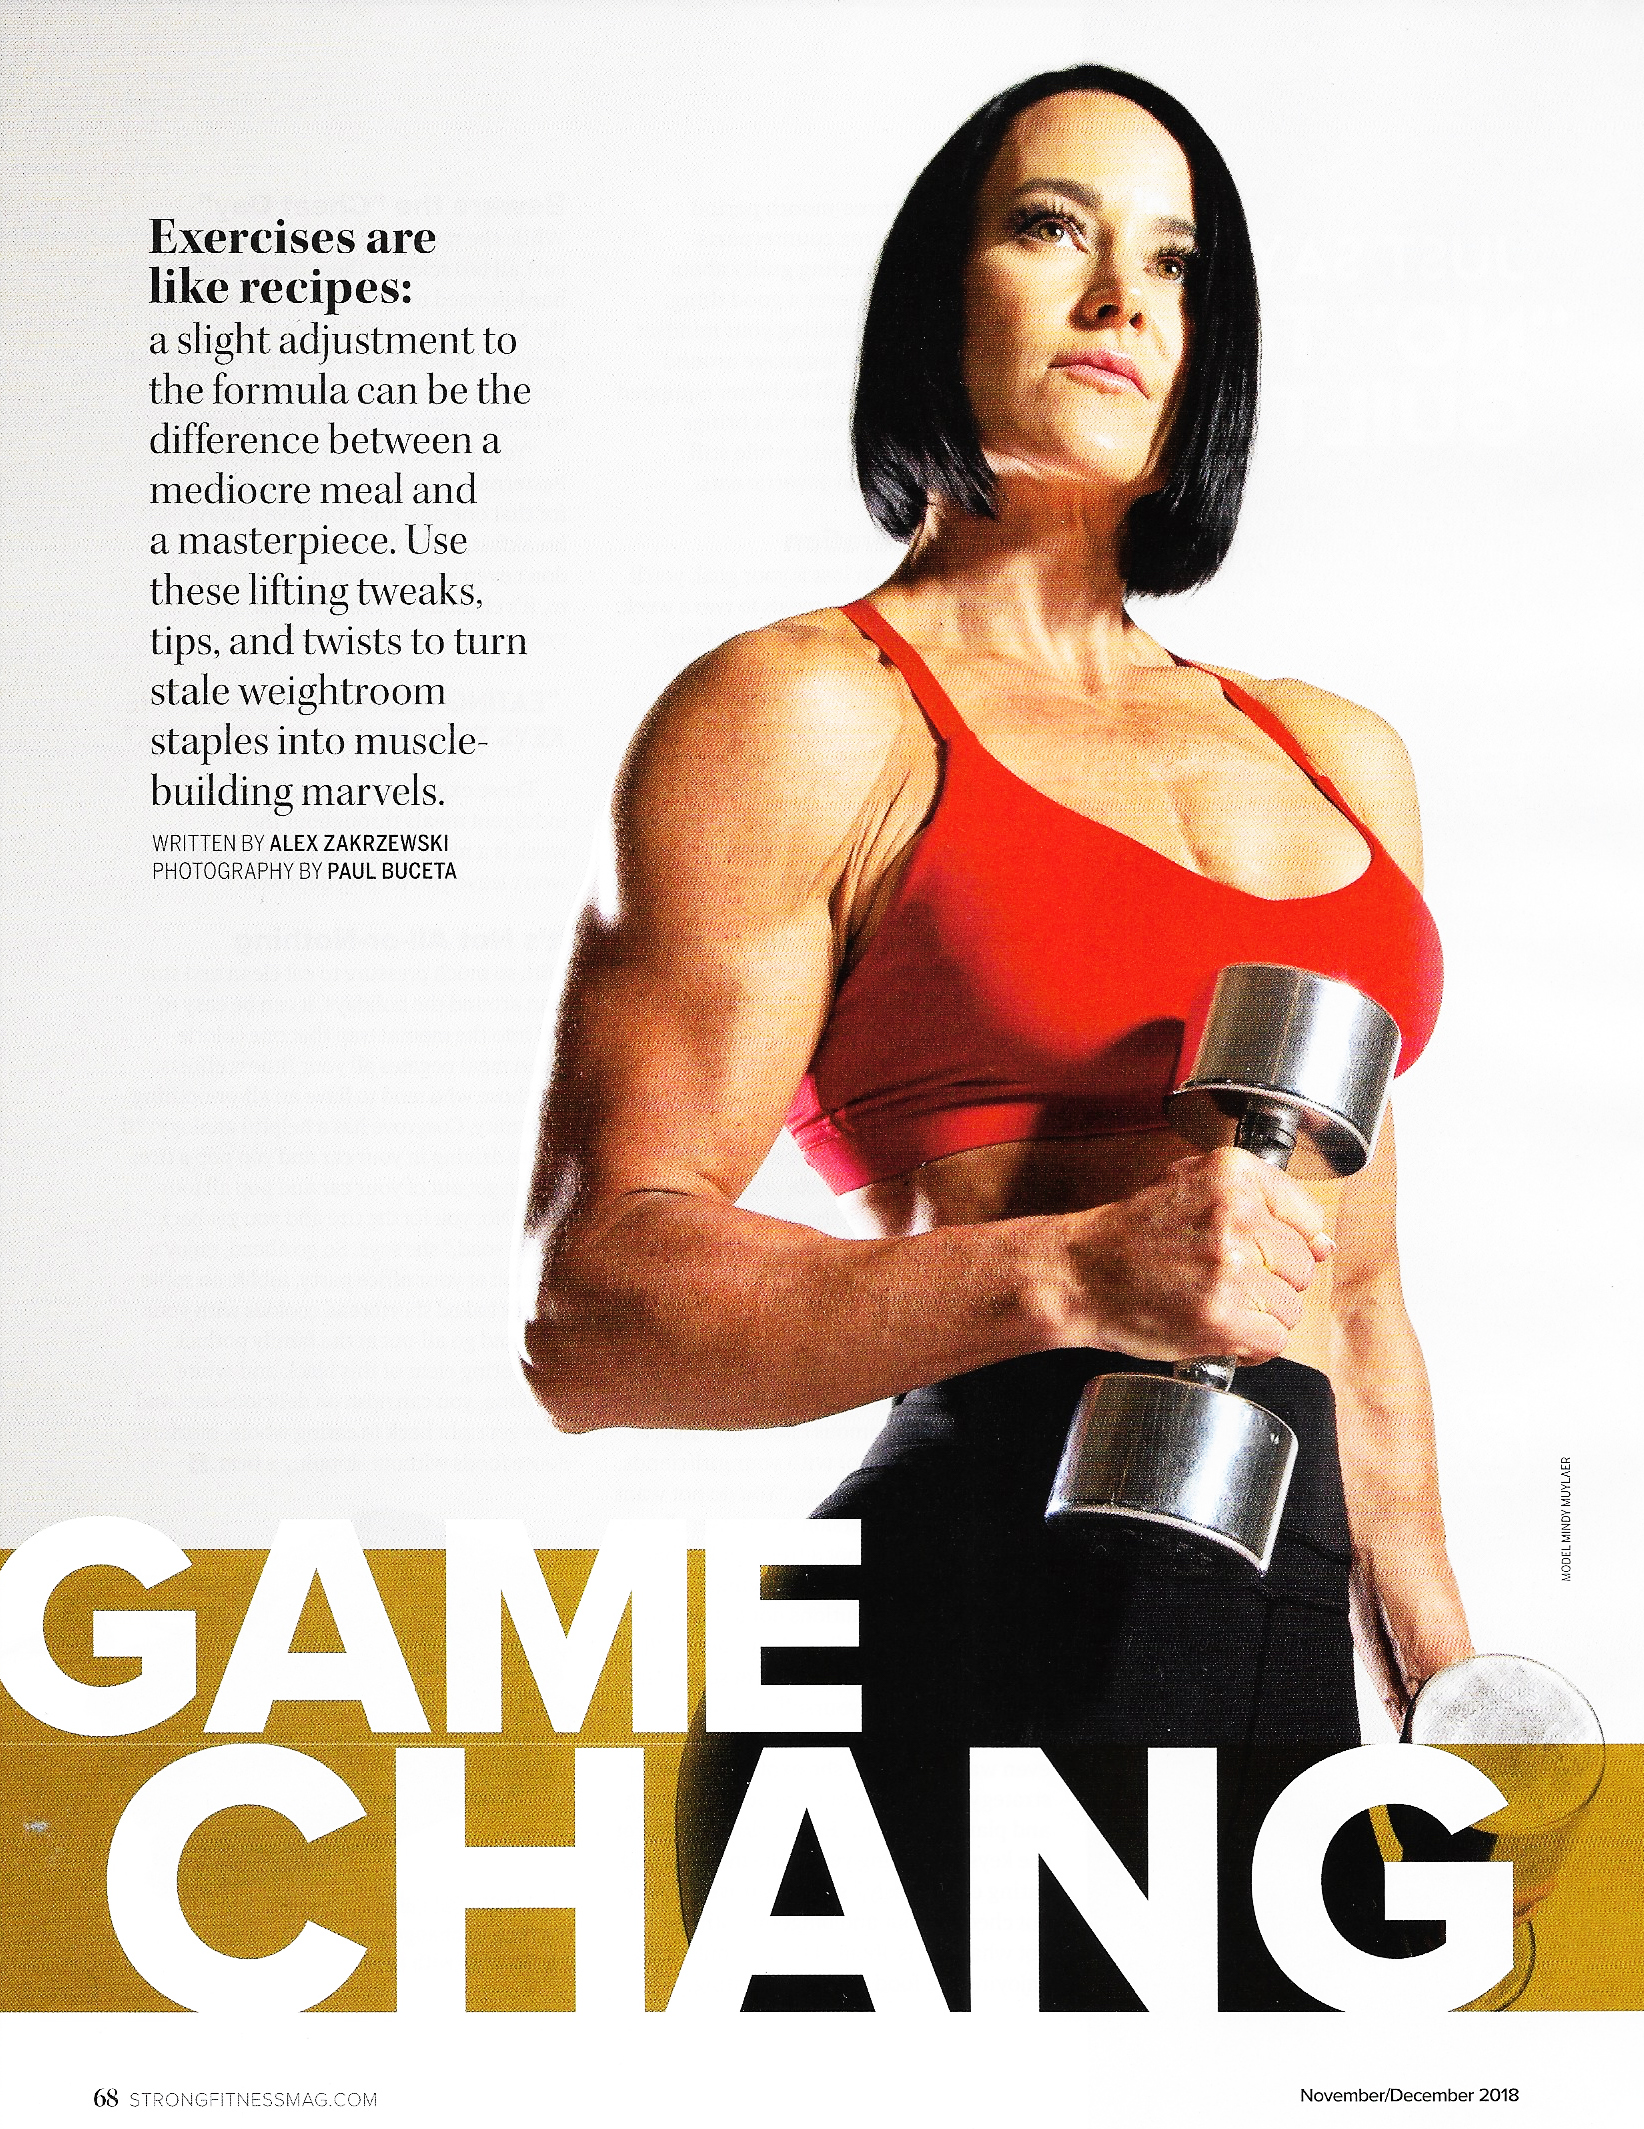 1-article1, strong fitness mag, js.jpg